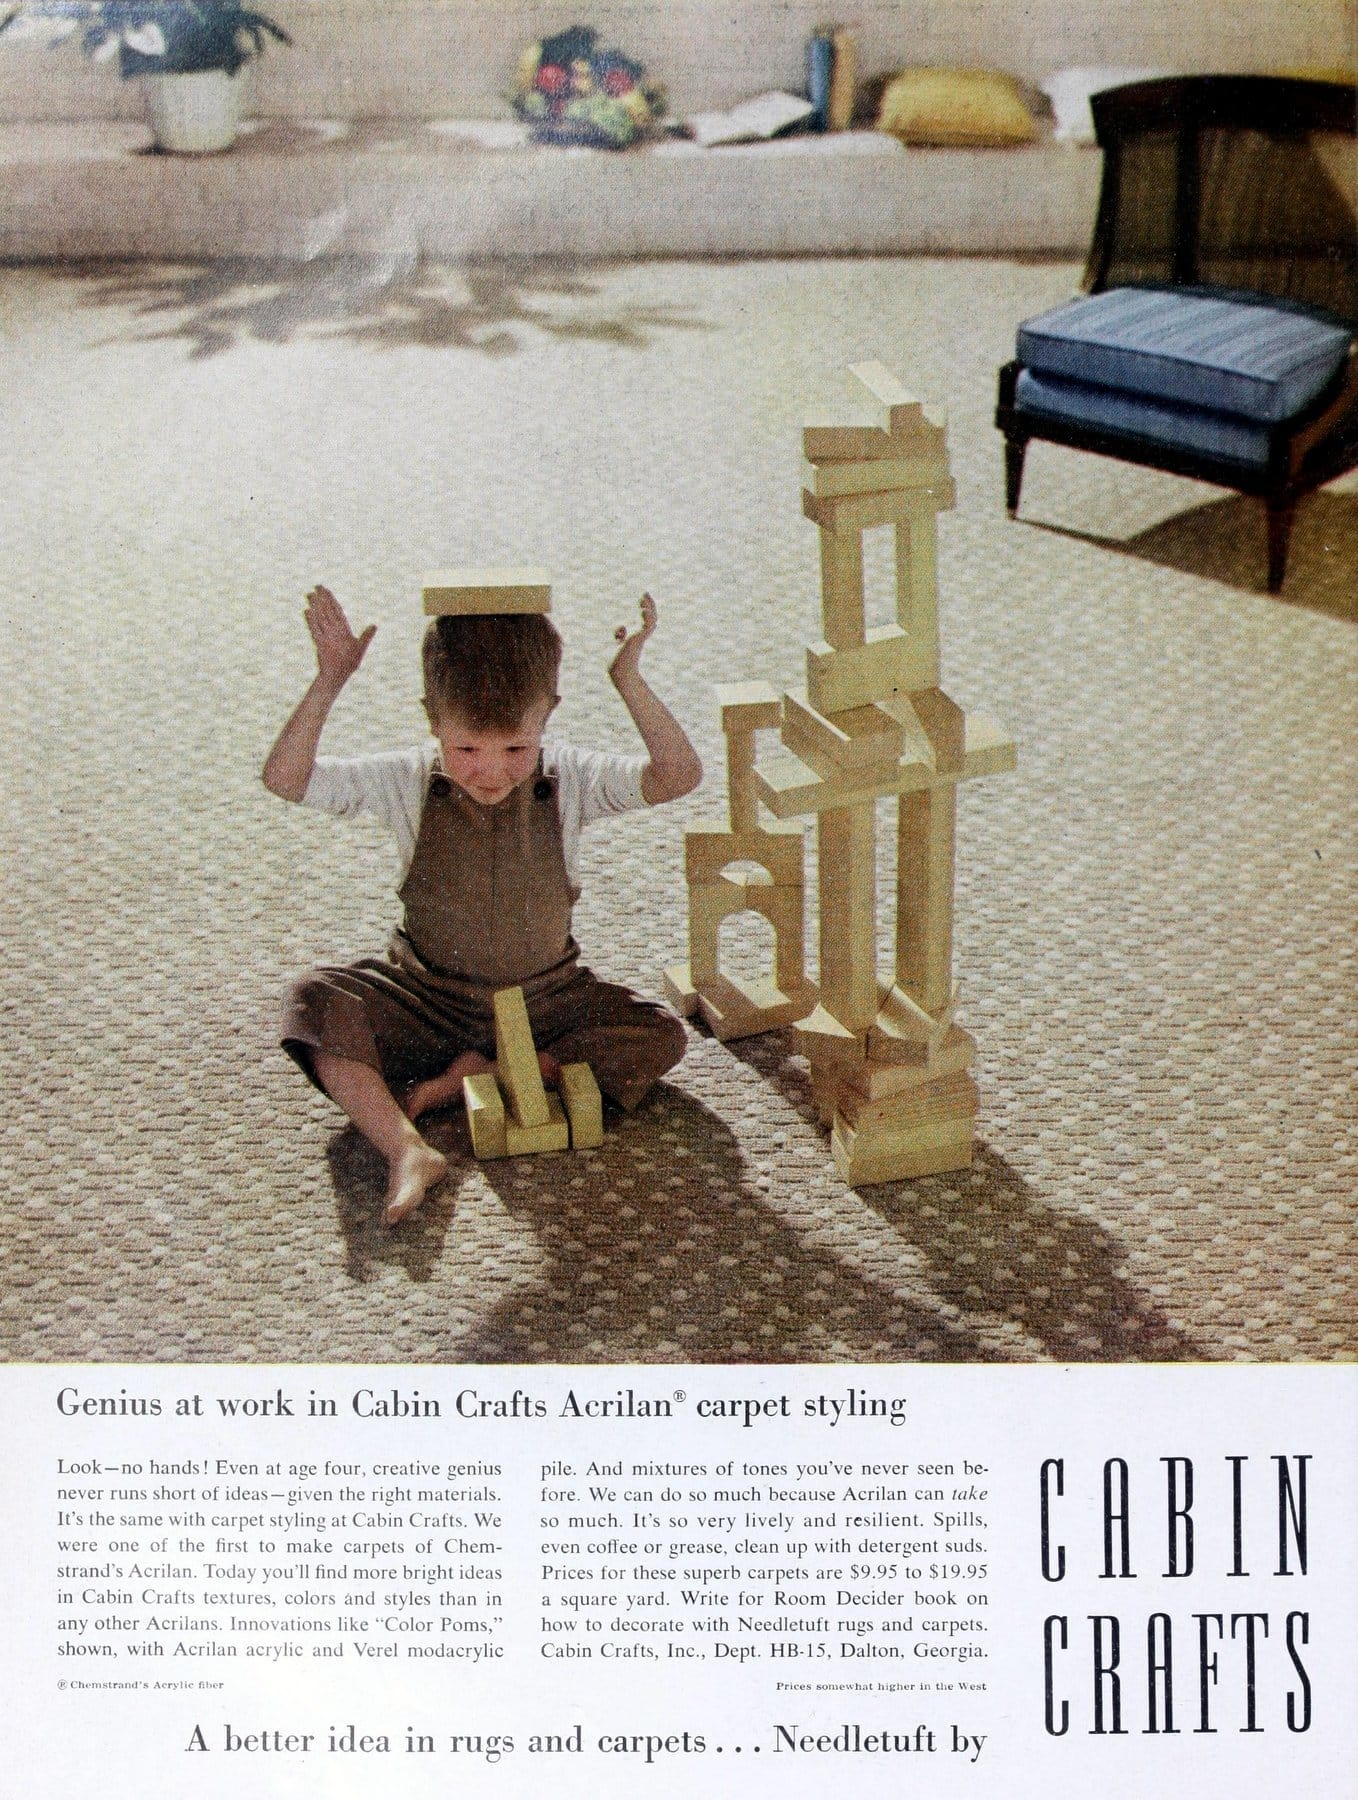 Neutral colors of vintage Cabin Craft textured wall-to-wall carpeting (1960)